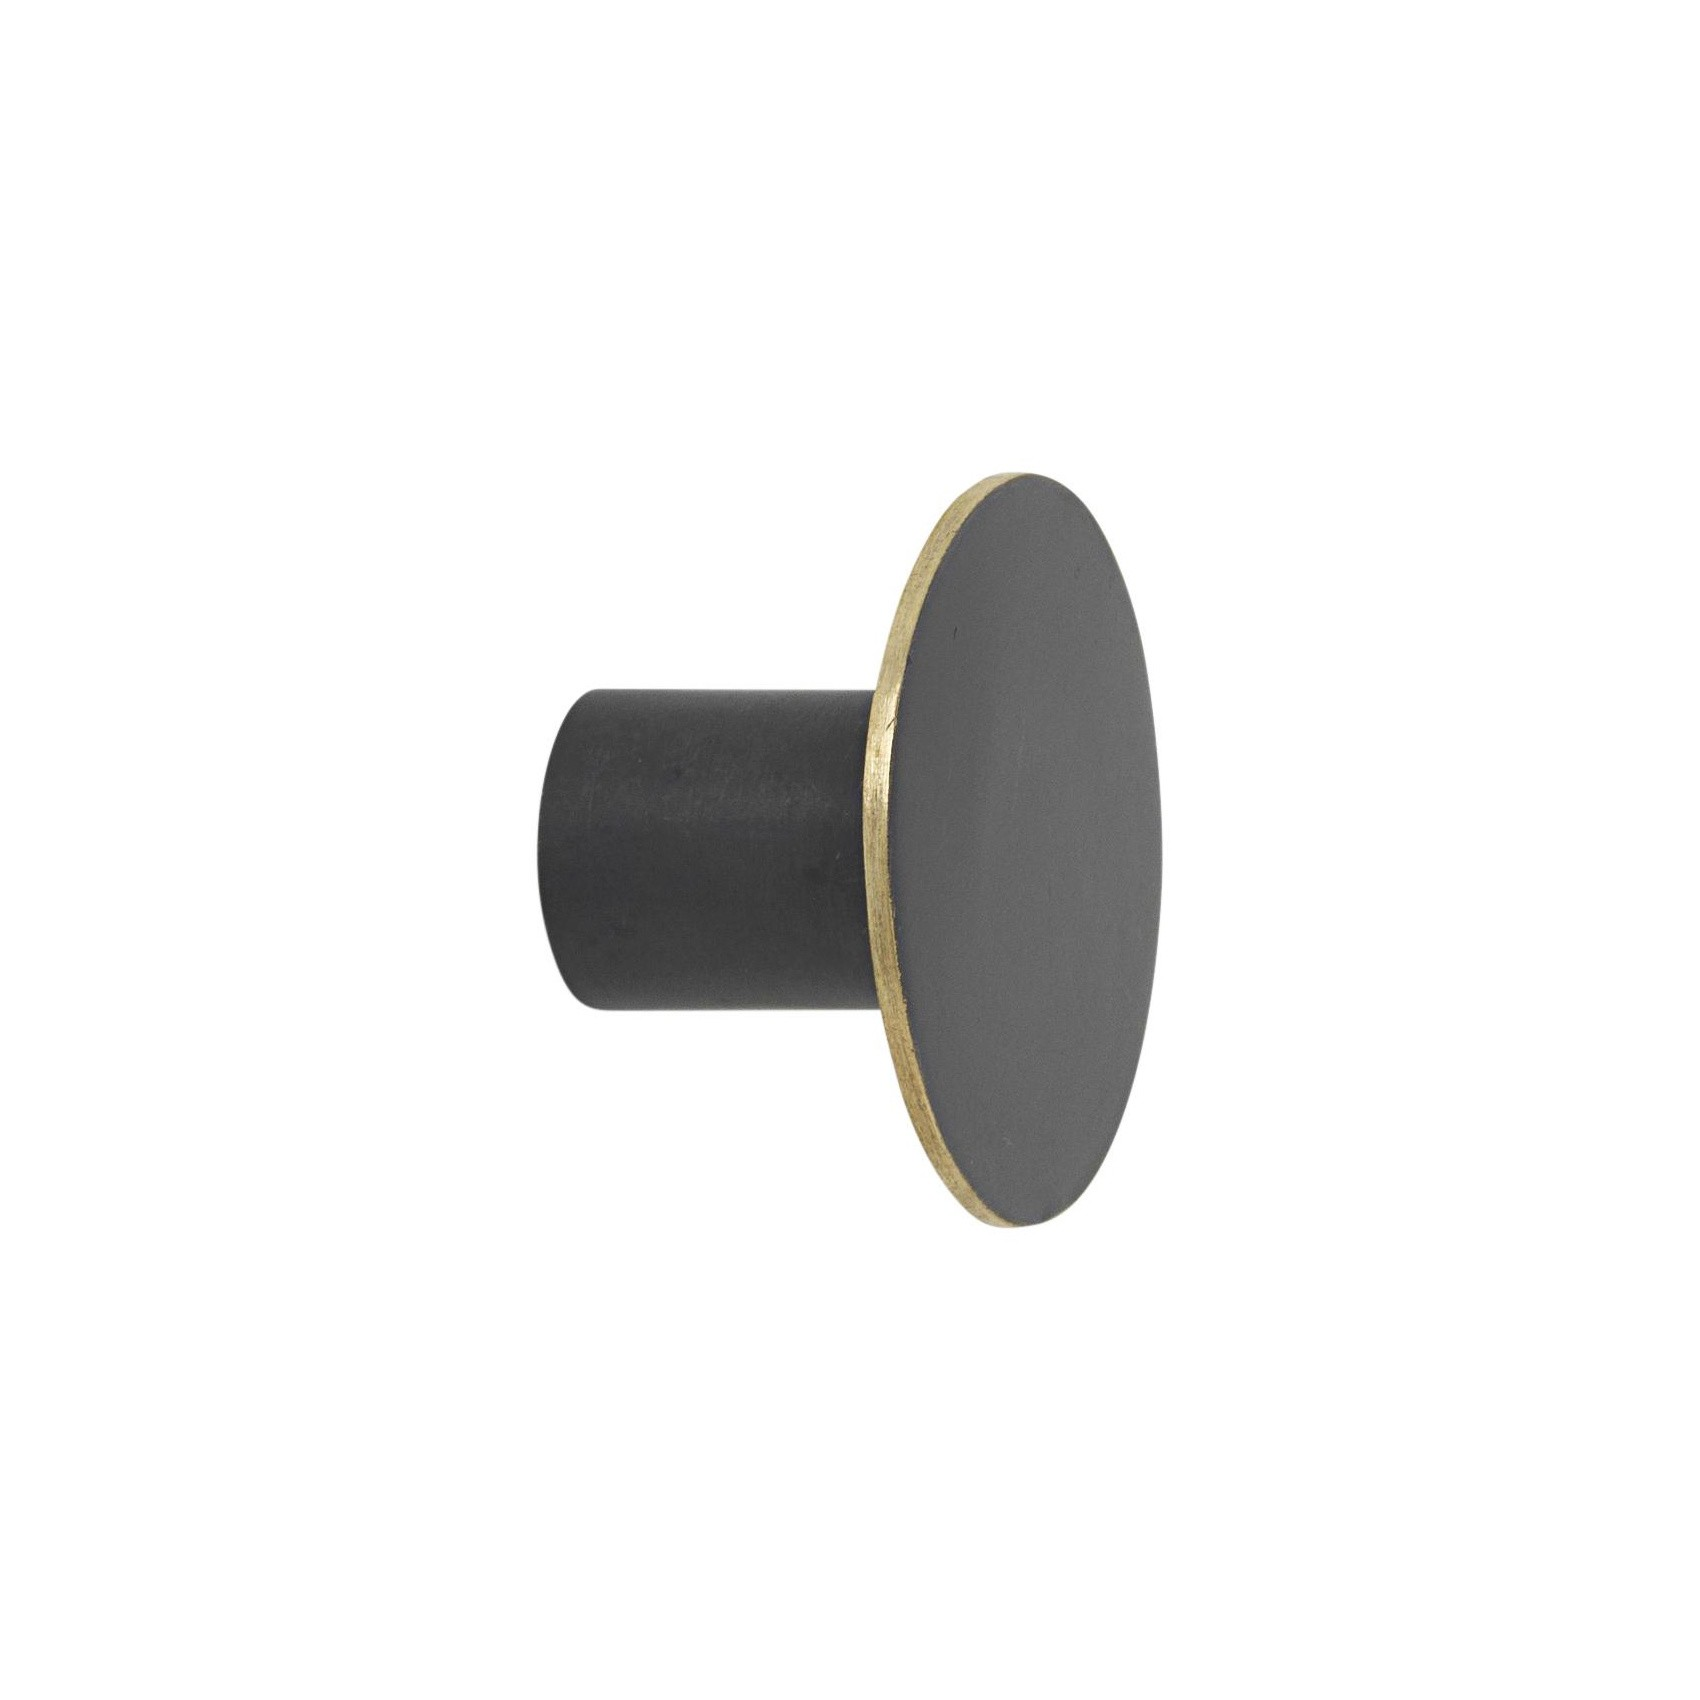 Black Wall Hooks Ferm Living Black Brass Wall Hook